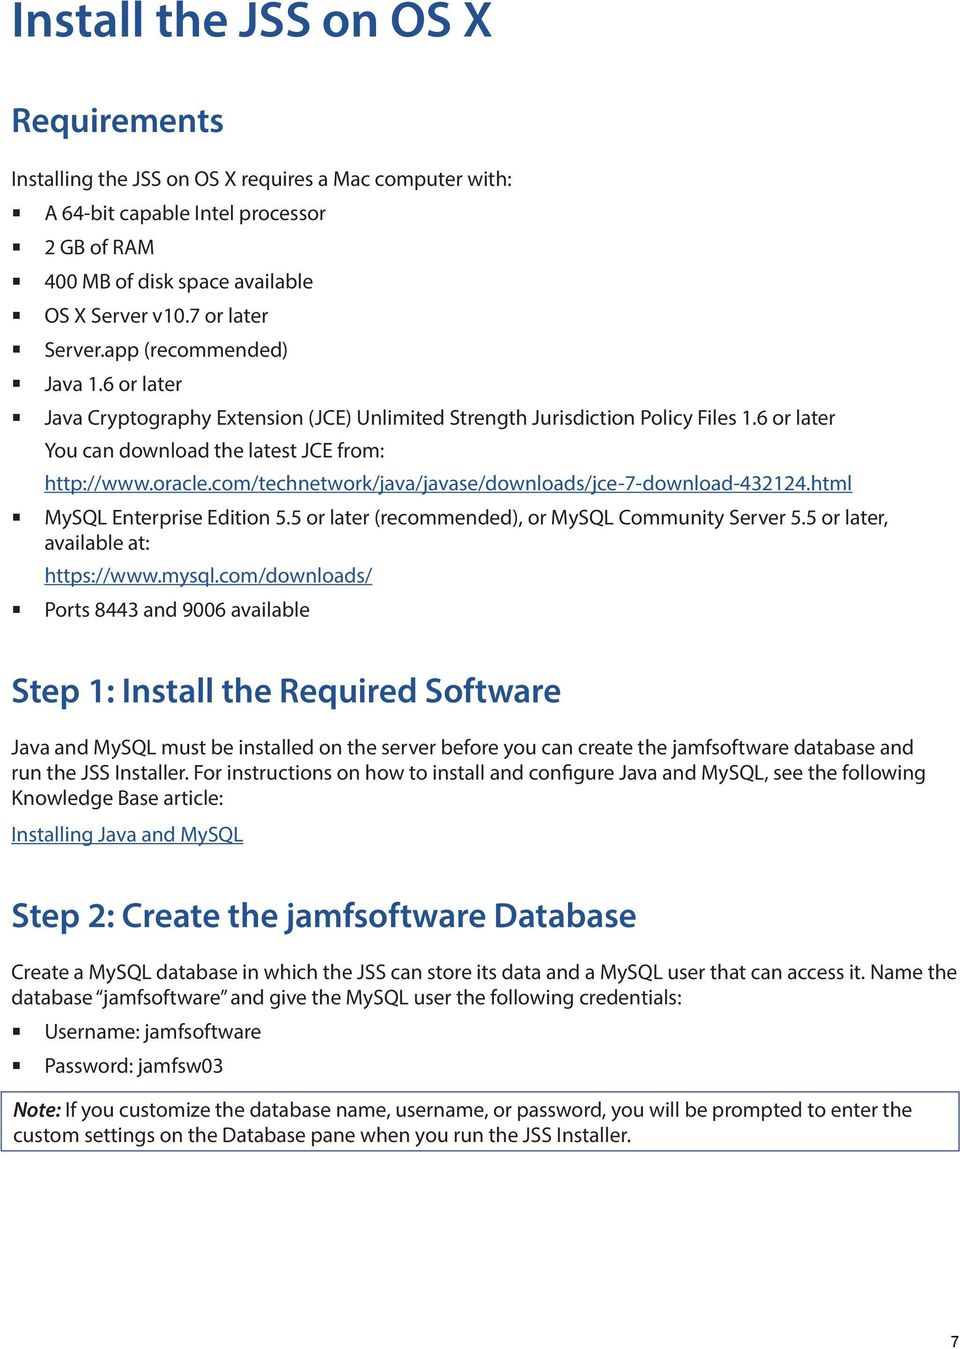 oracle.com/technetwork/java/javase/downloads/jce-7-download-432124.html MySQL Enterprise Edition 5.5 or later (recommended), or MySQL Community Server 5.5 or later, available at: https://www.mysql.